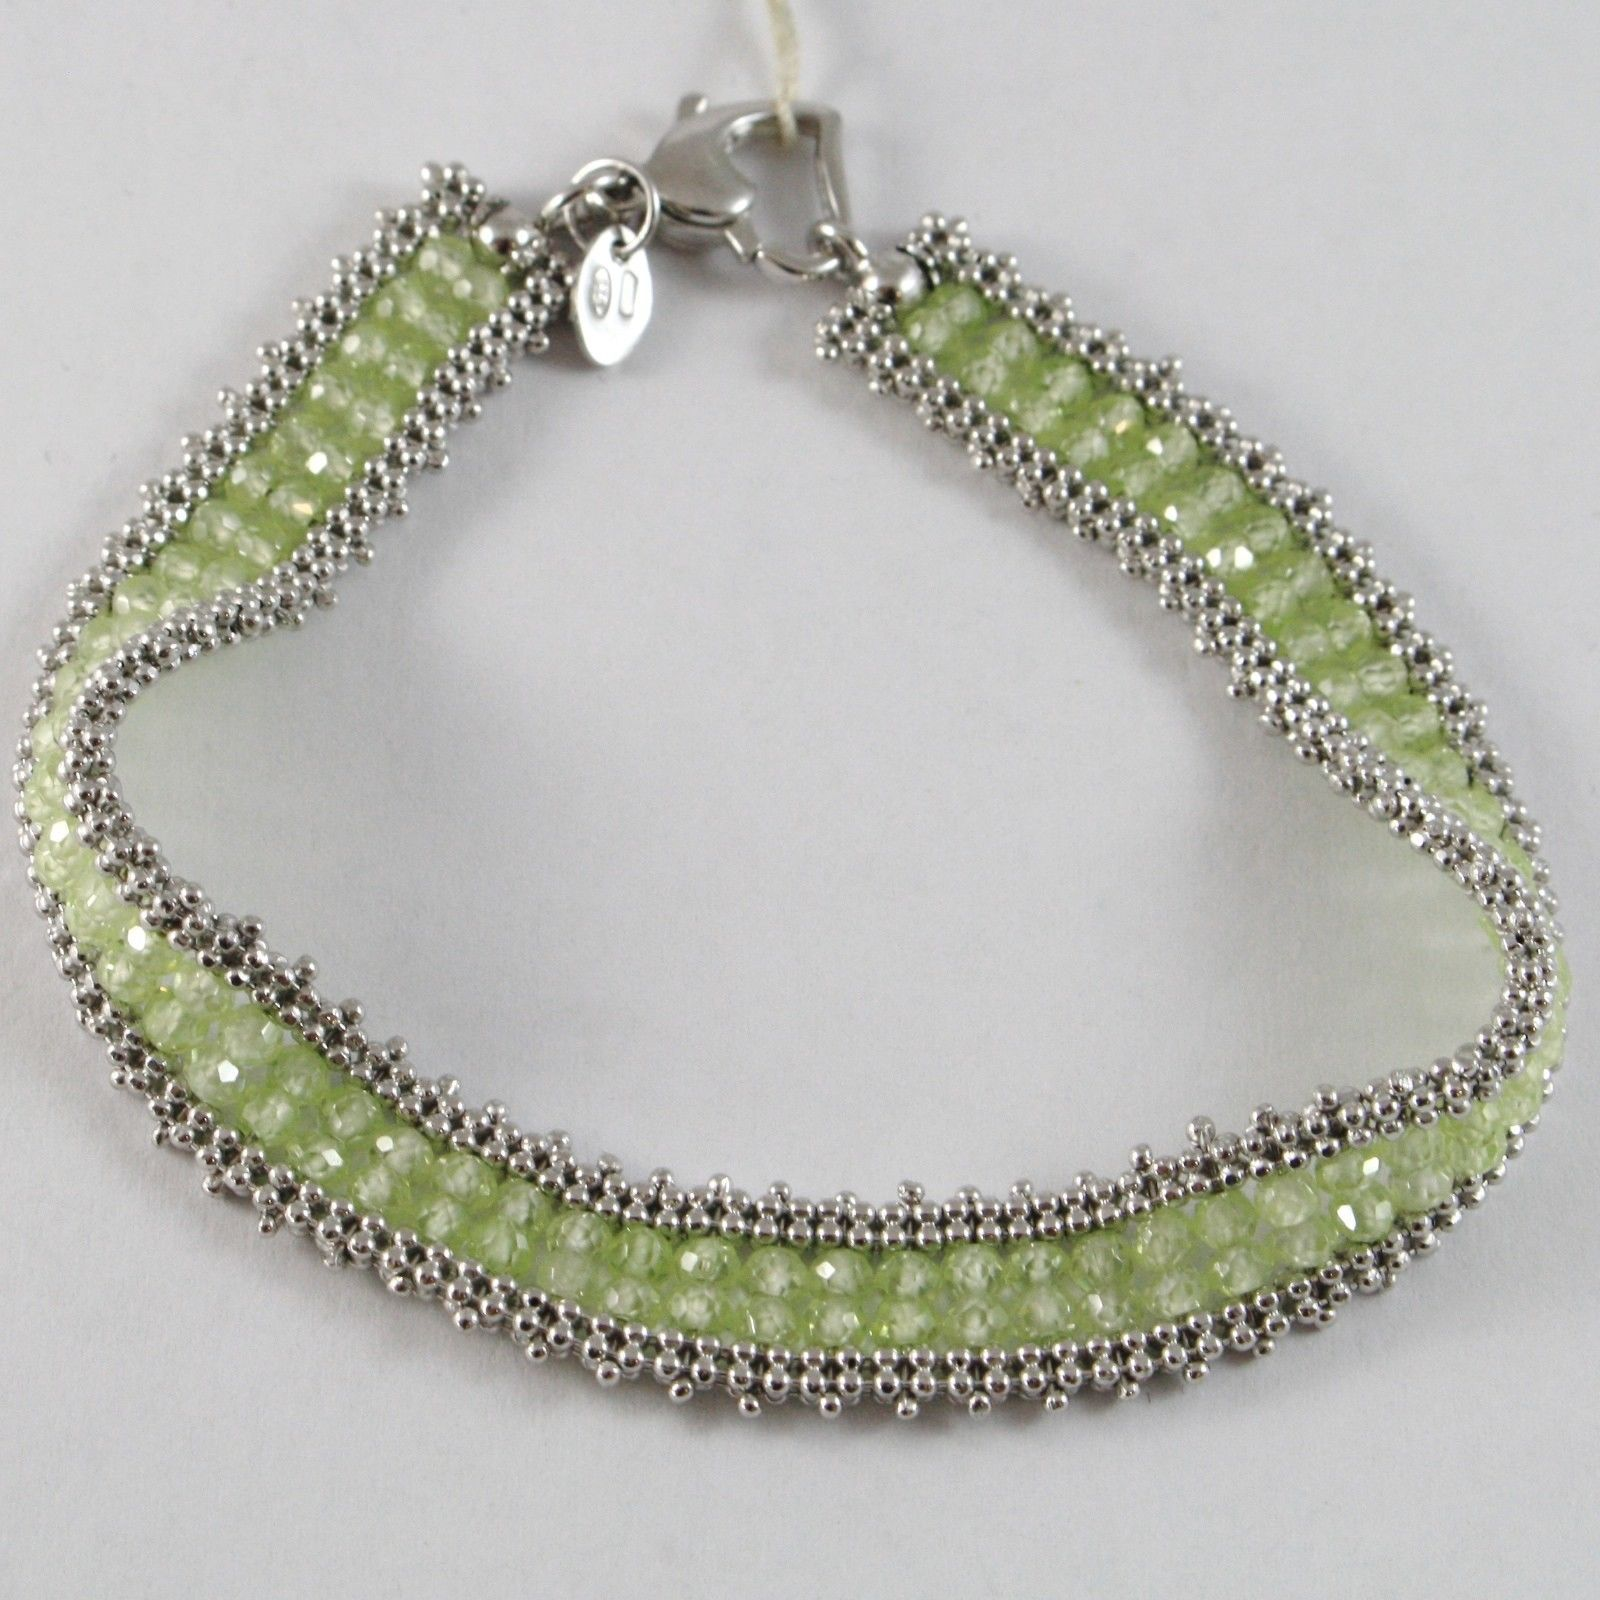 925 STERLING SILVER SAVOIA TENNIS BRACELET WITH PERIDOT, MULTI WIRE AND BALLS